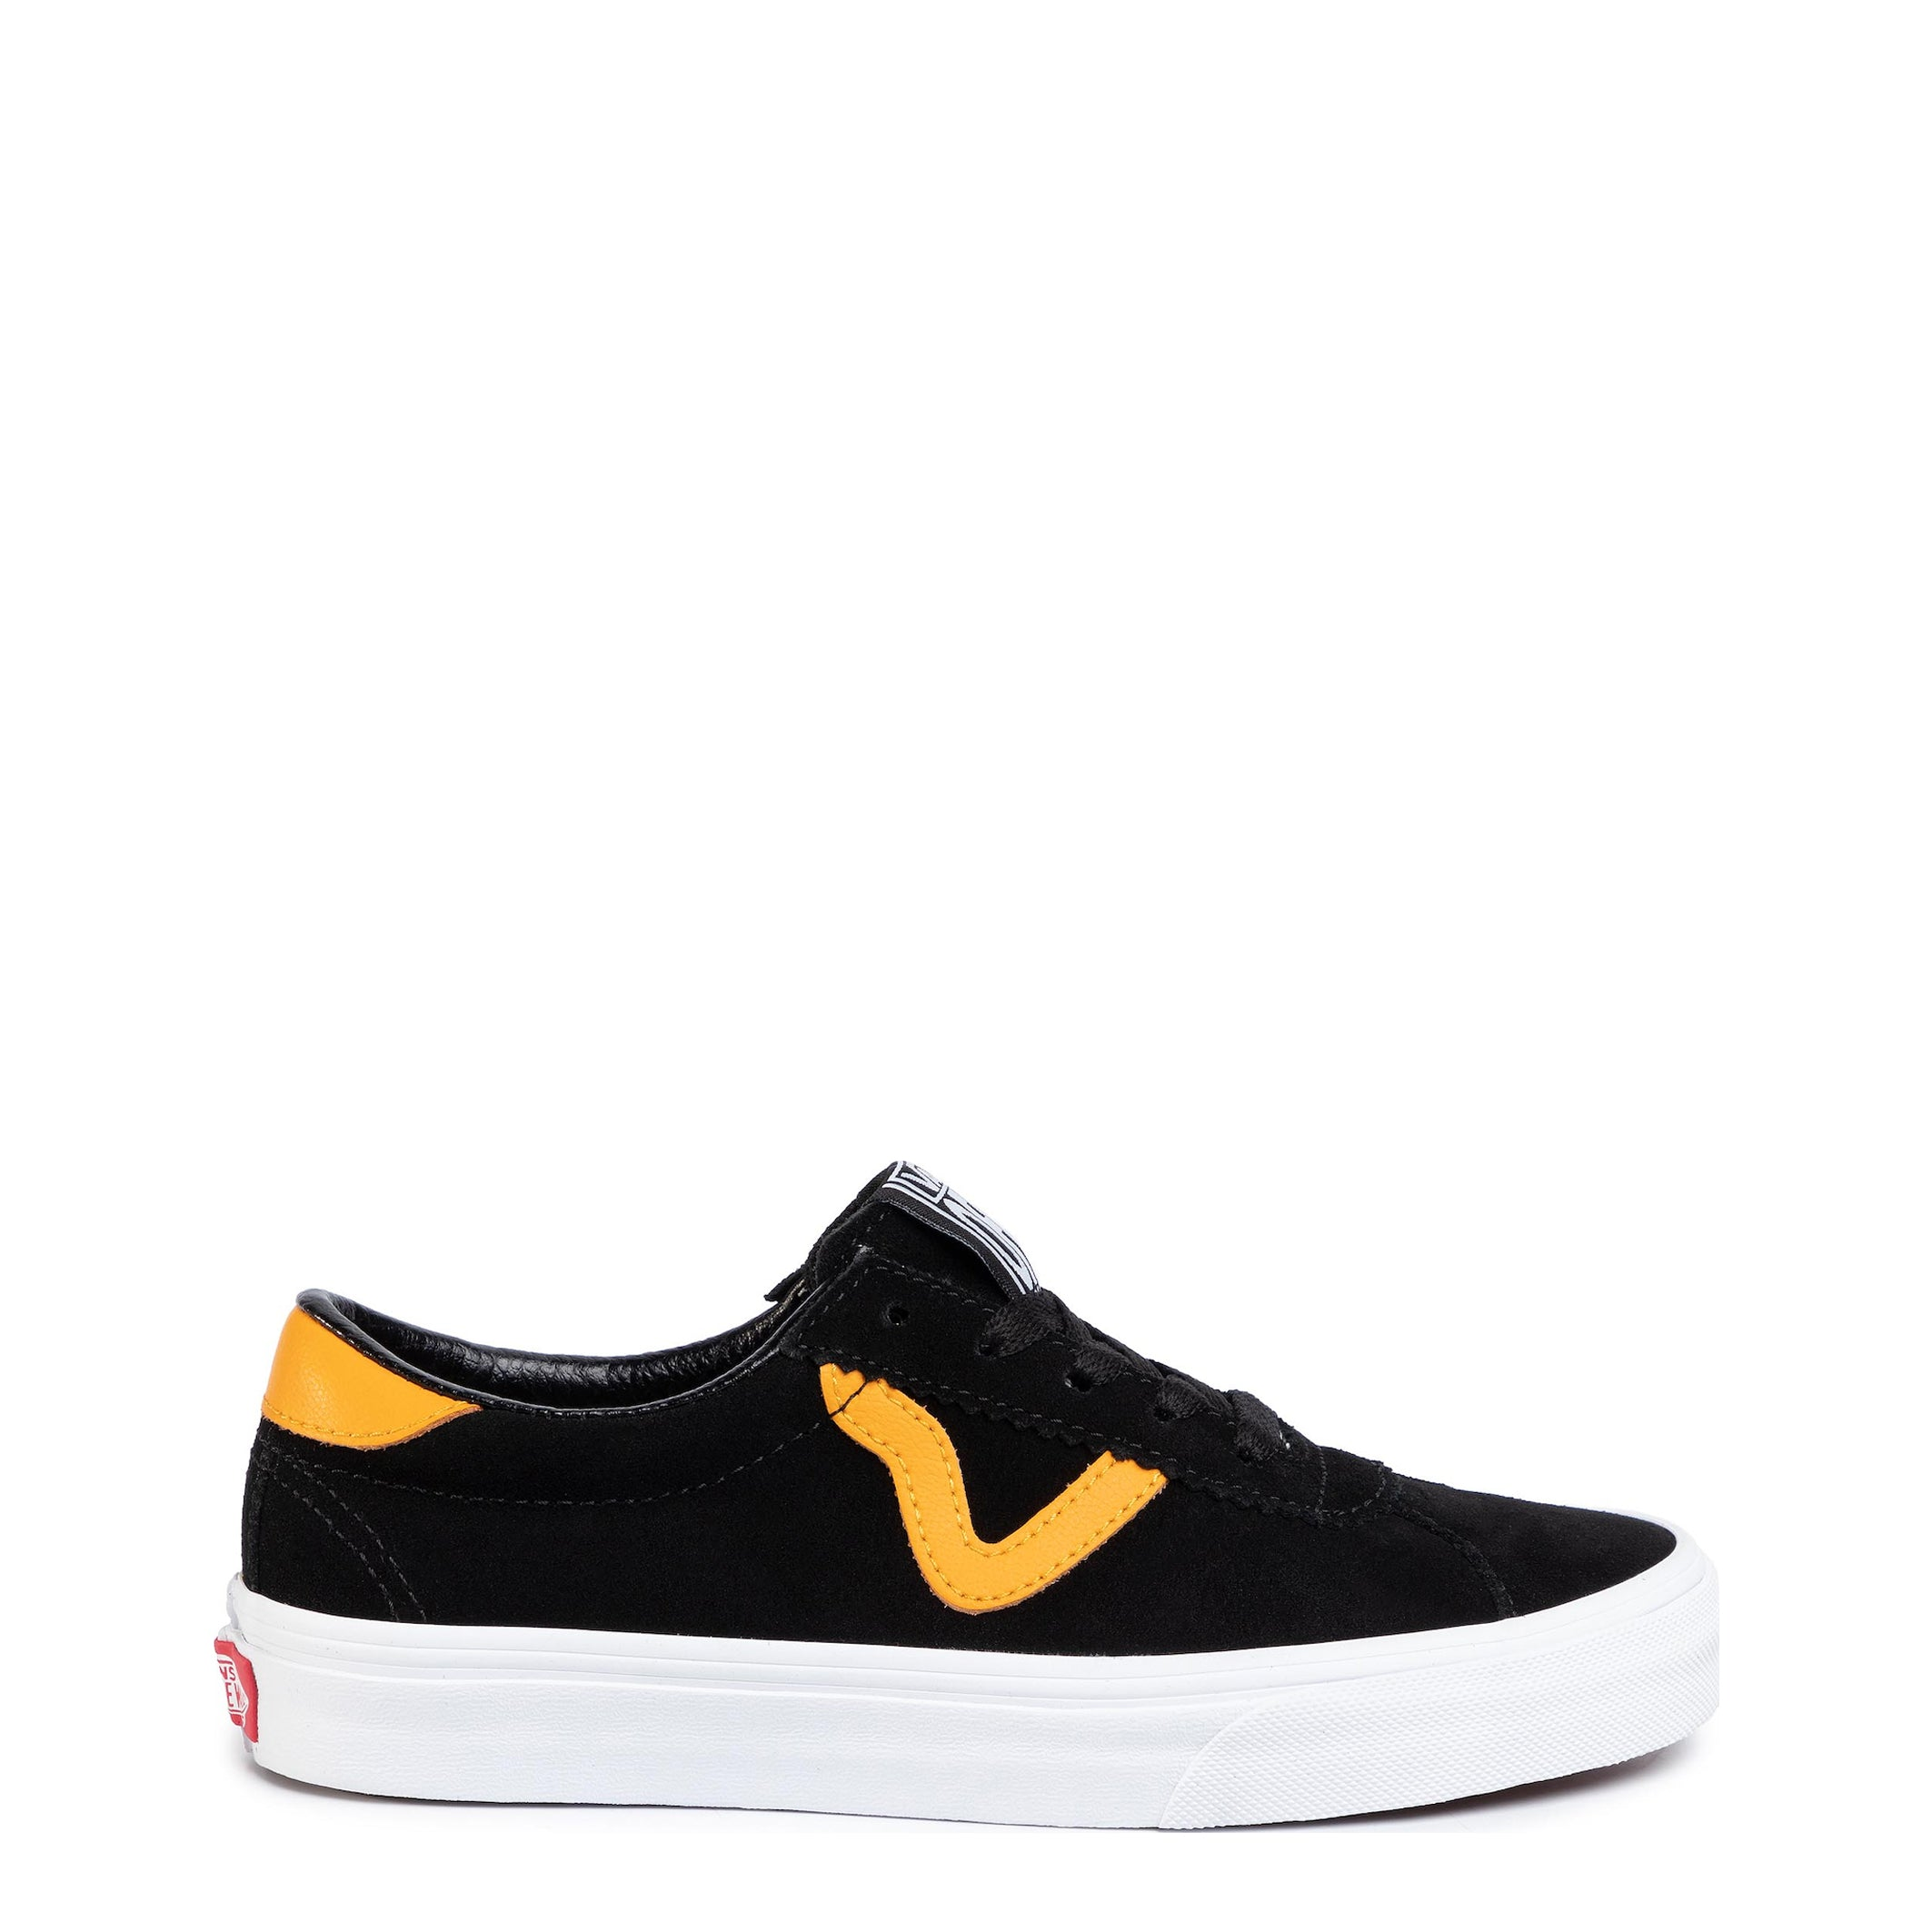 Vans Men's Trainers Various Colours SPORT_VN0A4BU6WO31